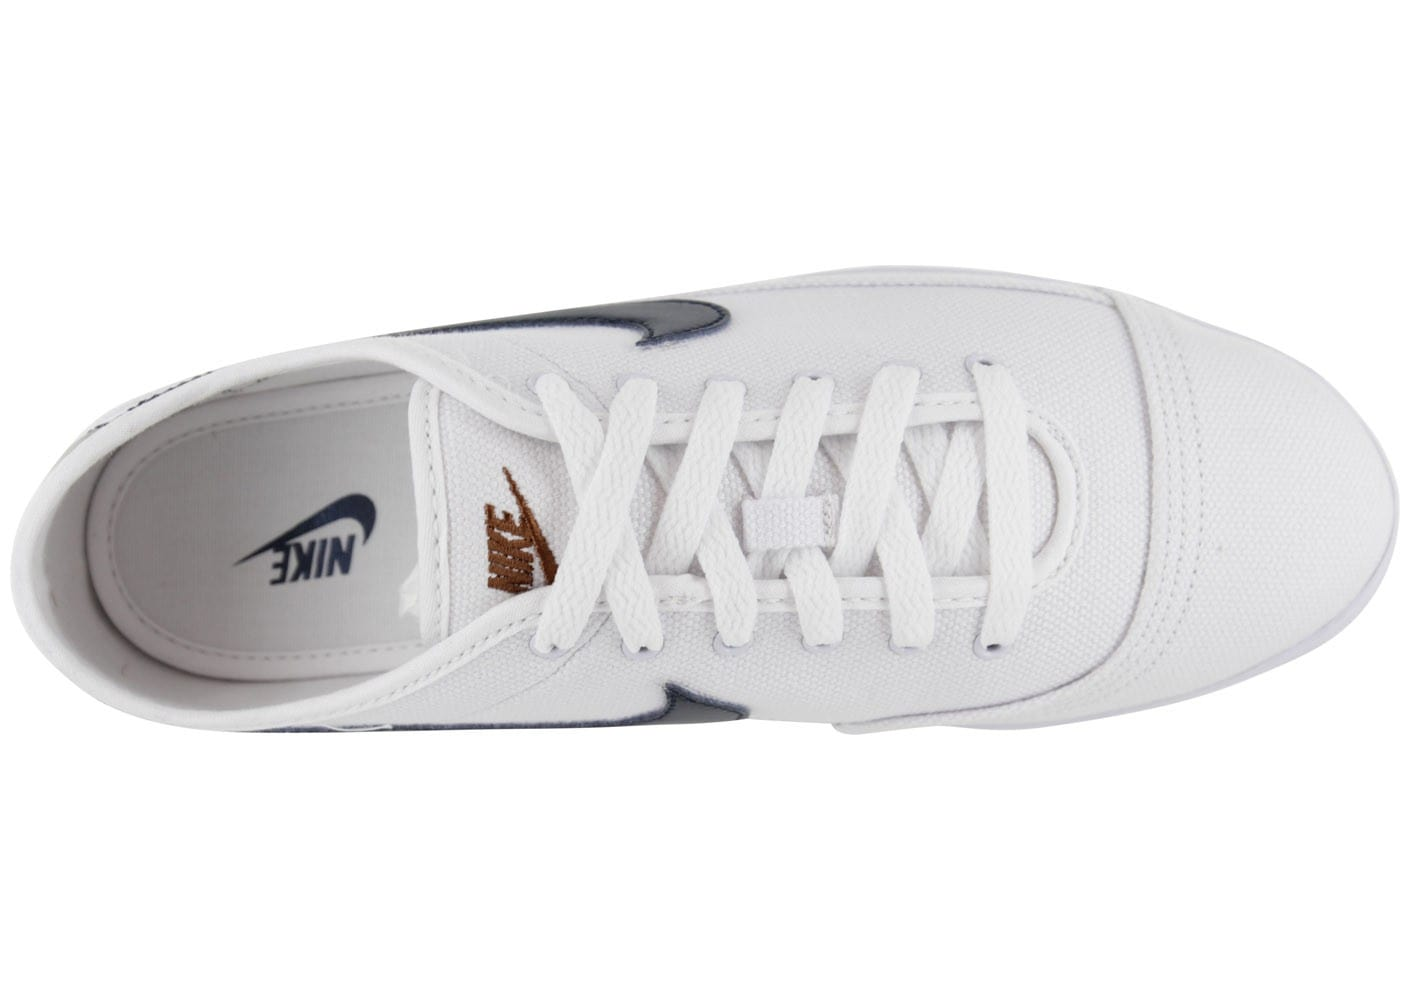 Nike Flash Toile Blanche - Chaussures Baskets homme - Chausport 083983388101